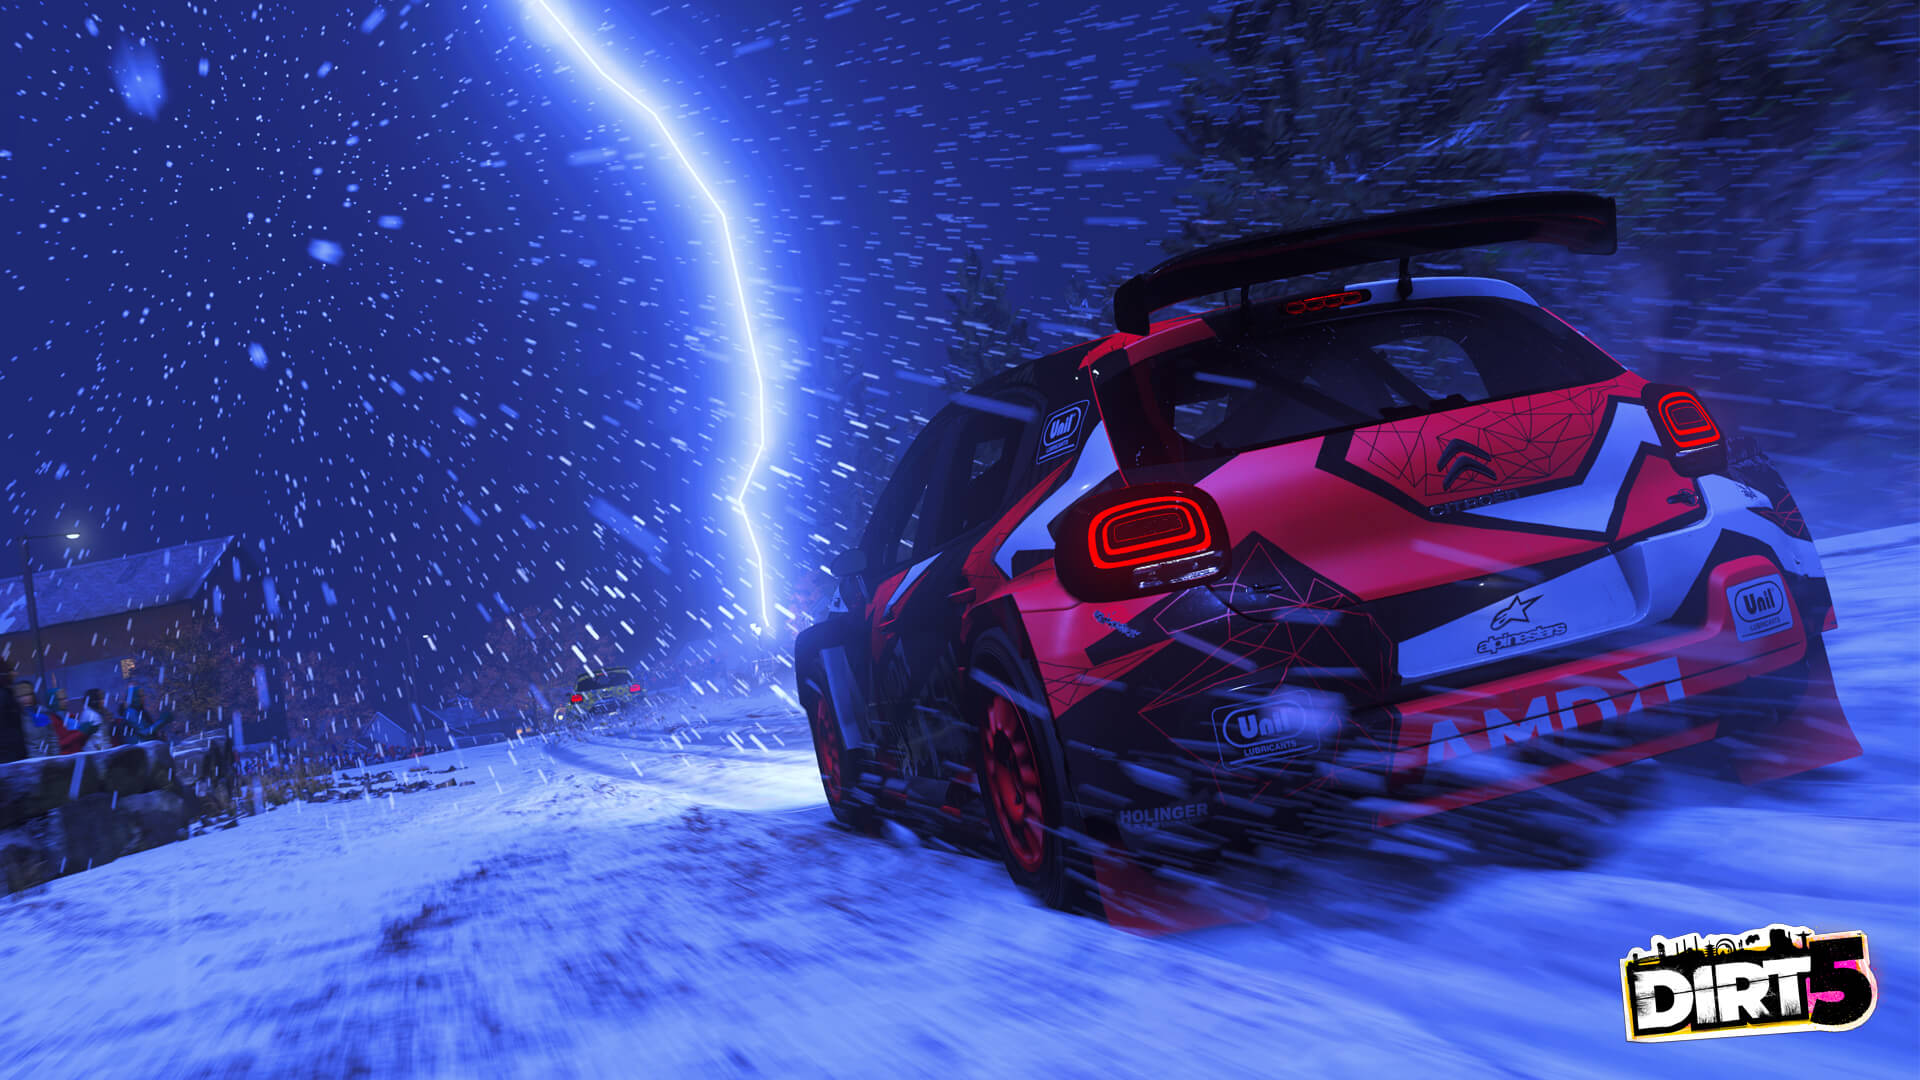 Dirt 5 Review: Trading Paint with Other Racers